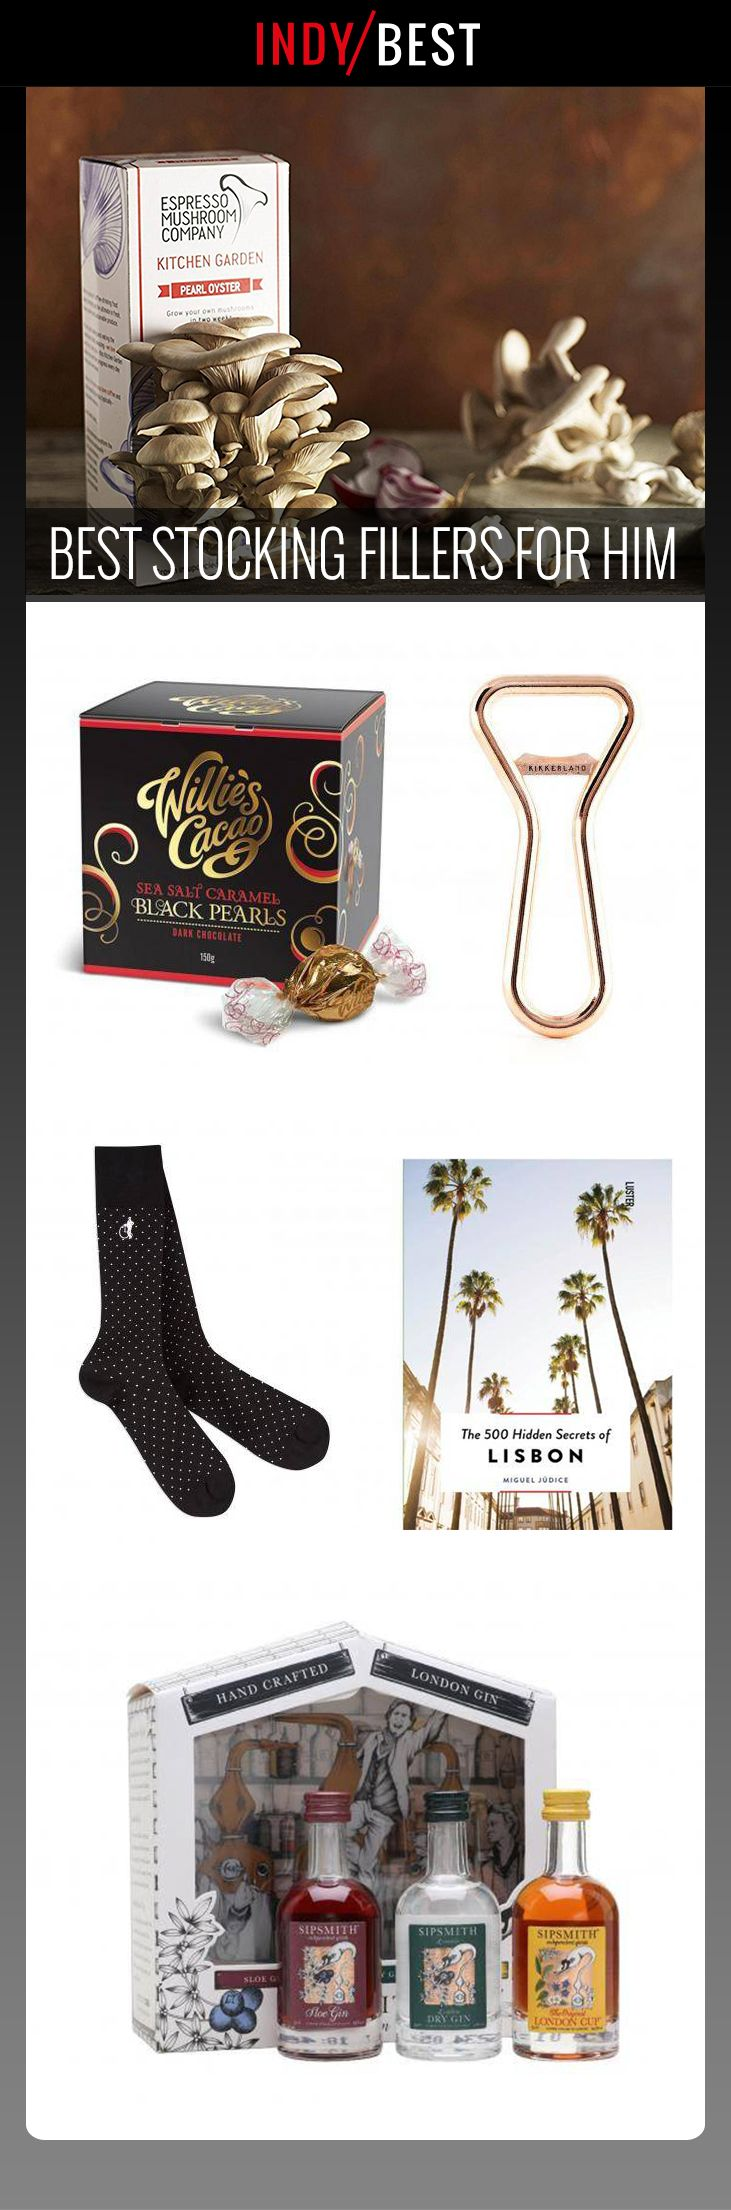 Our pick of the best stocking fillers for him: https://ind.pn/2zq06e8